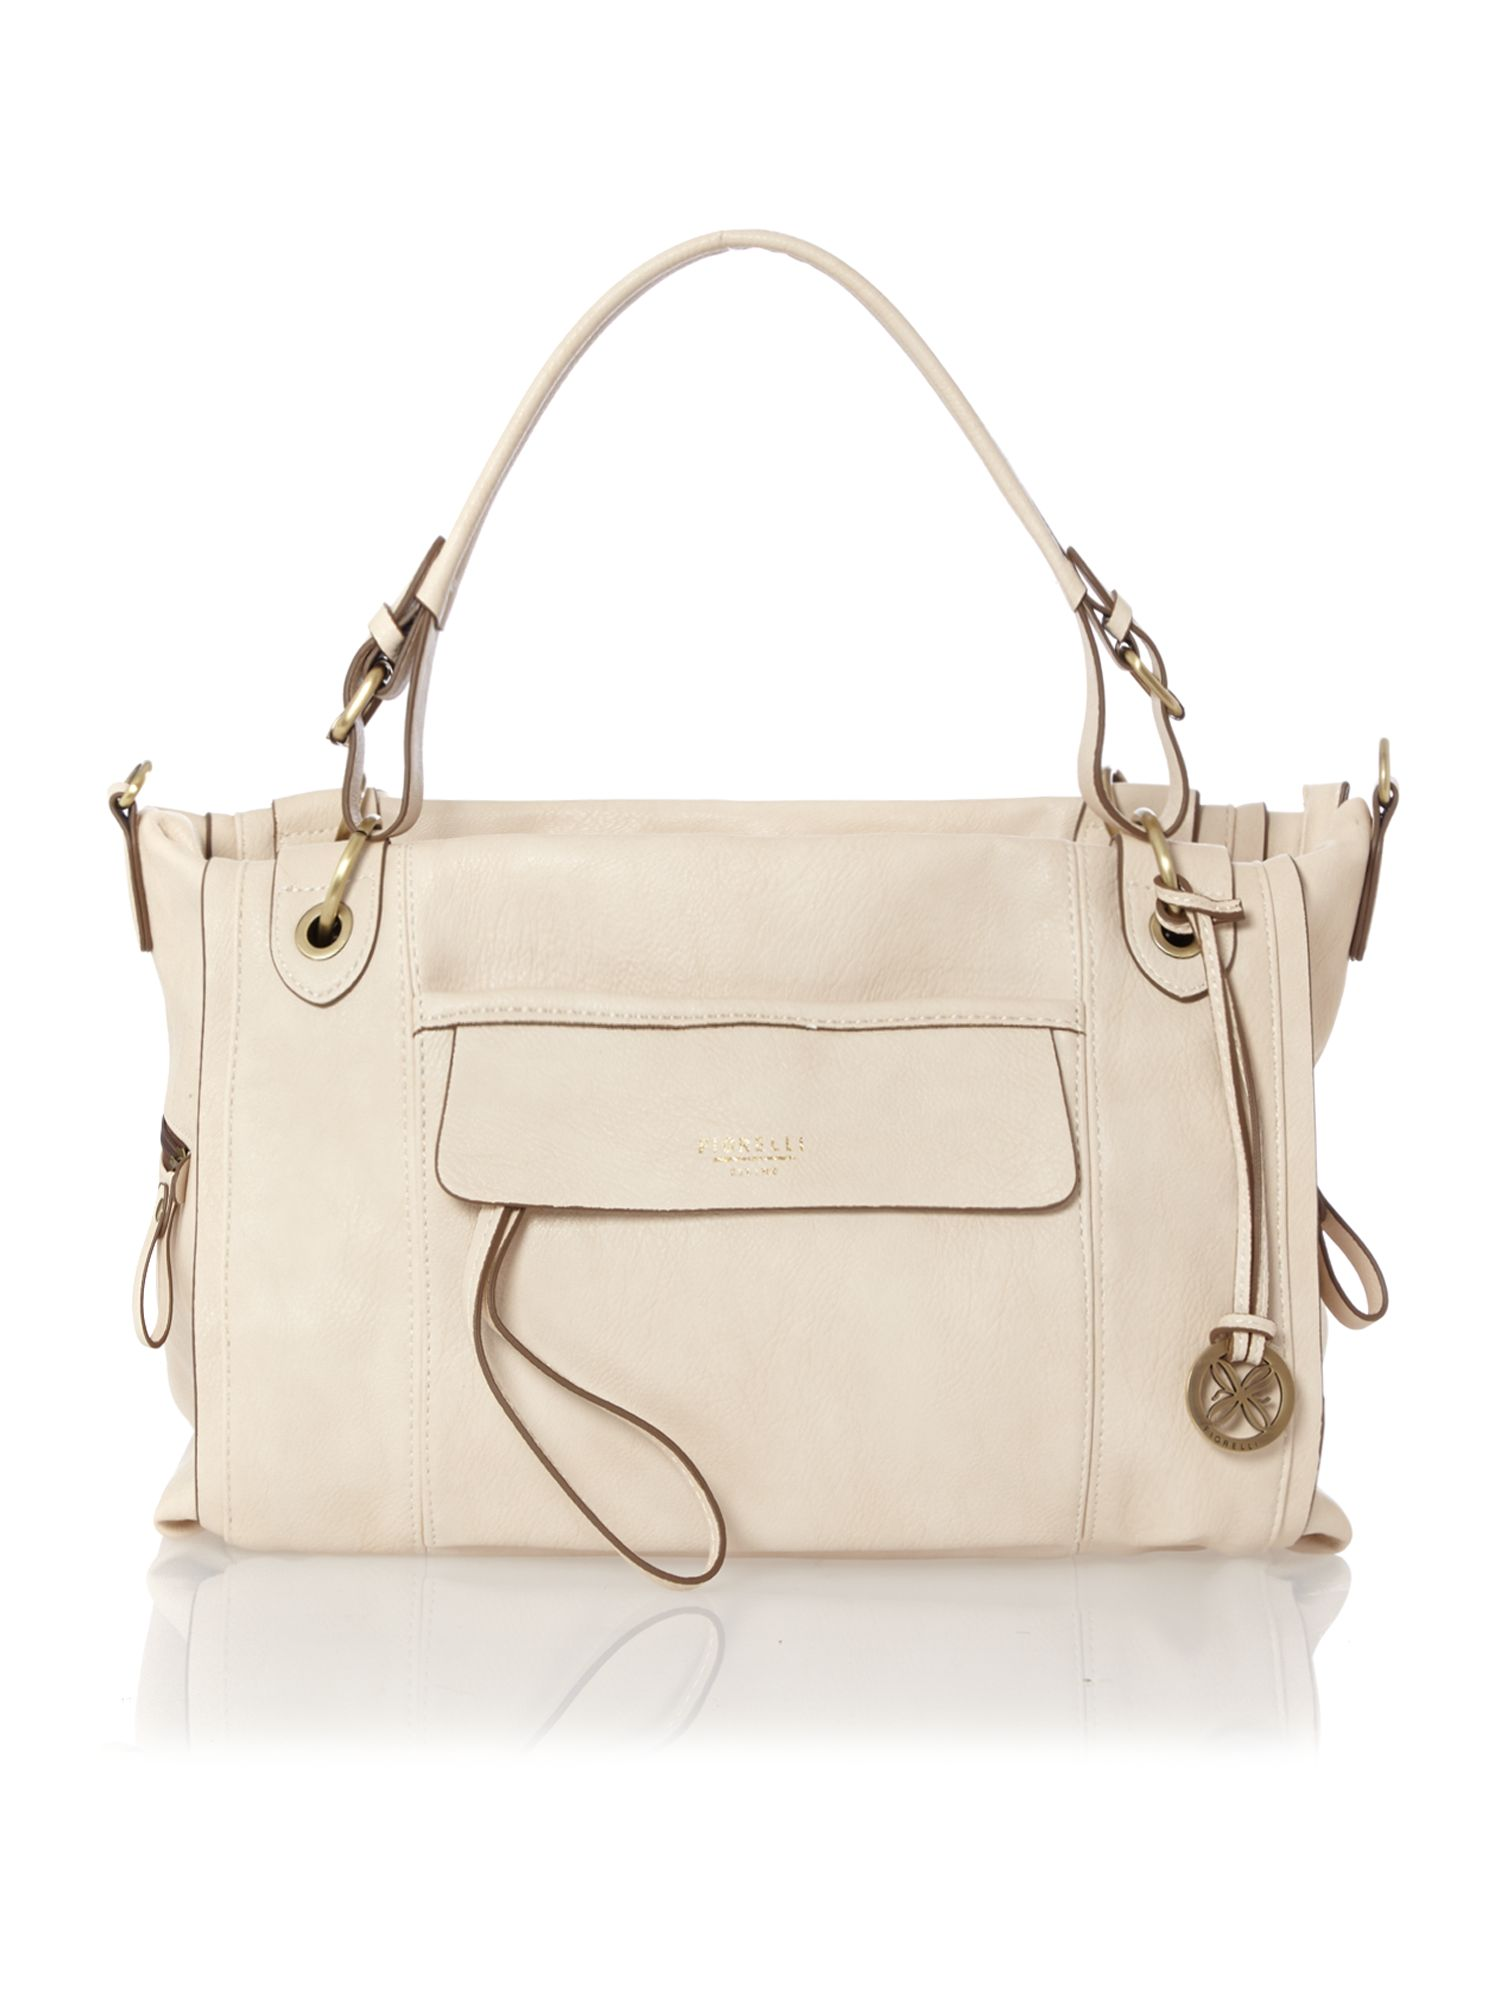 Roxy neutral tote bag